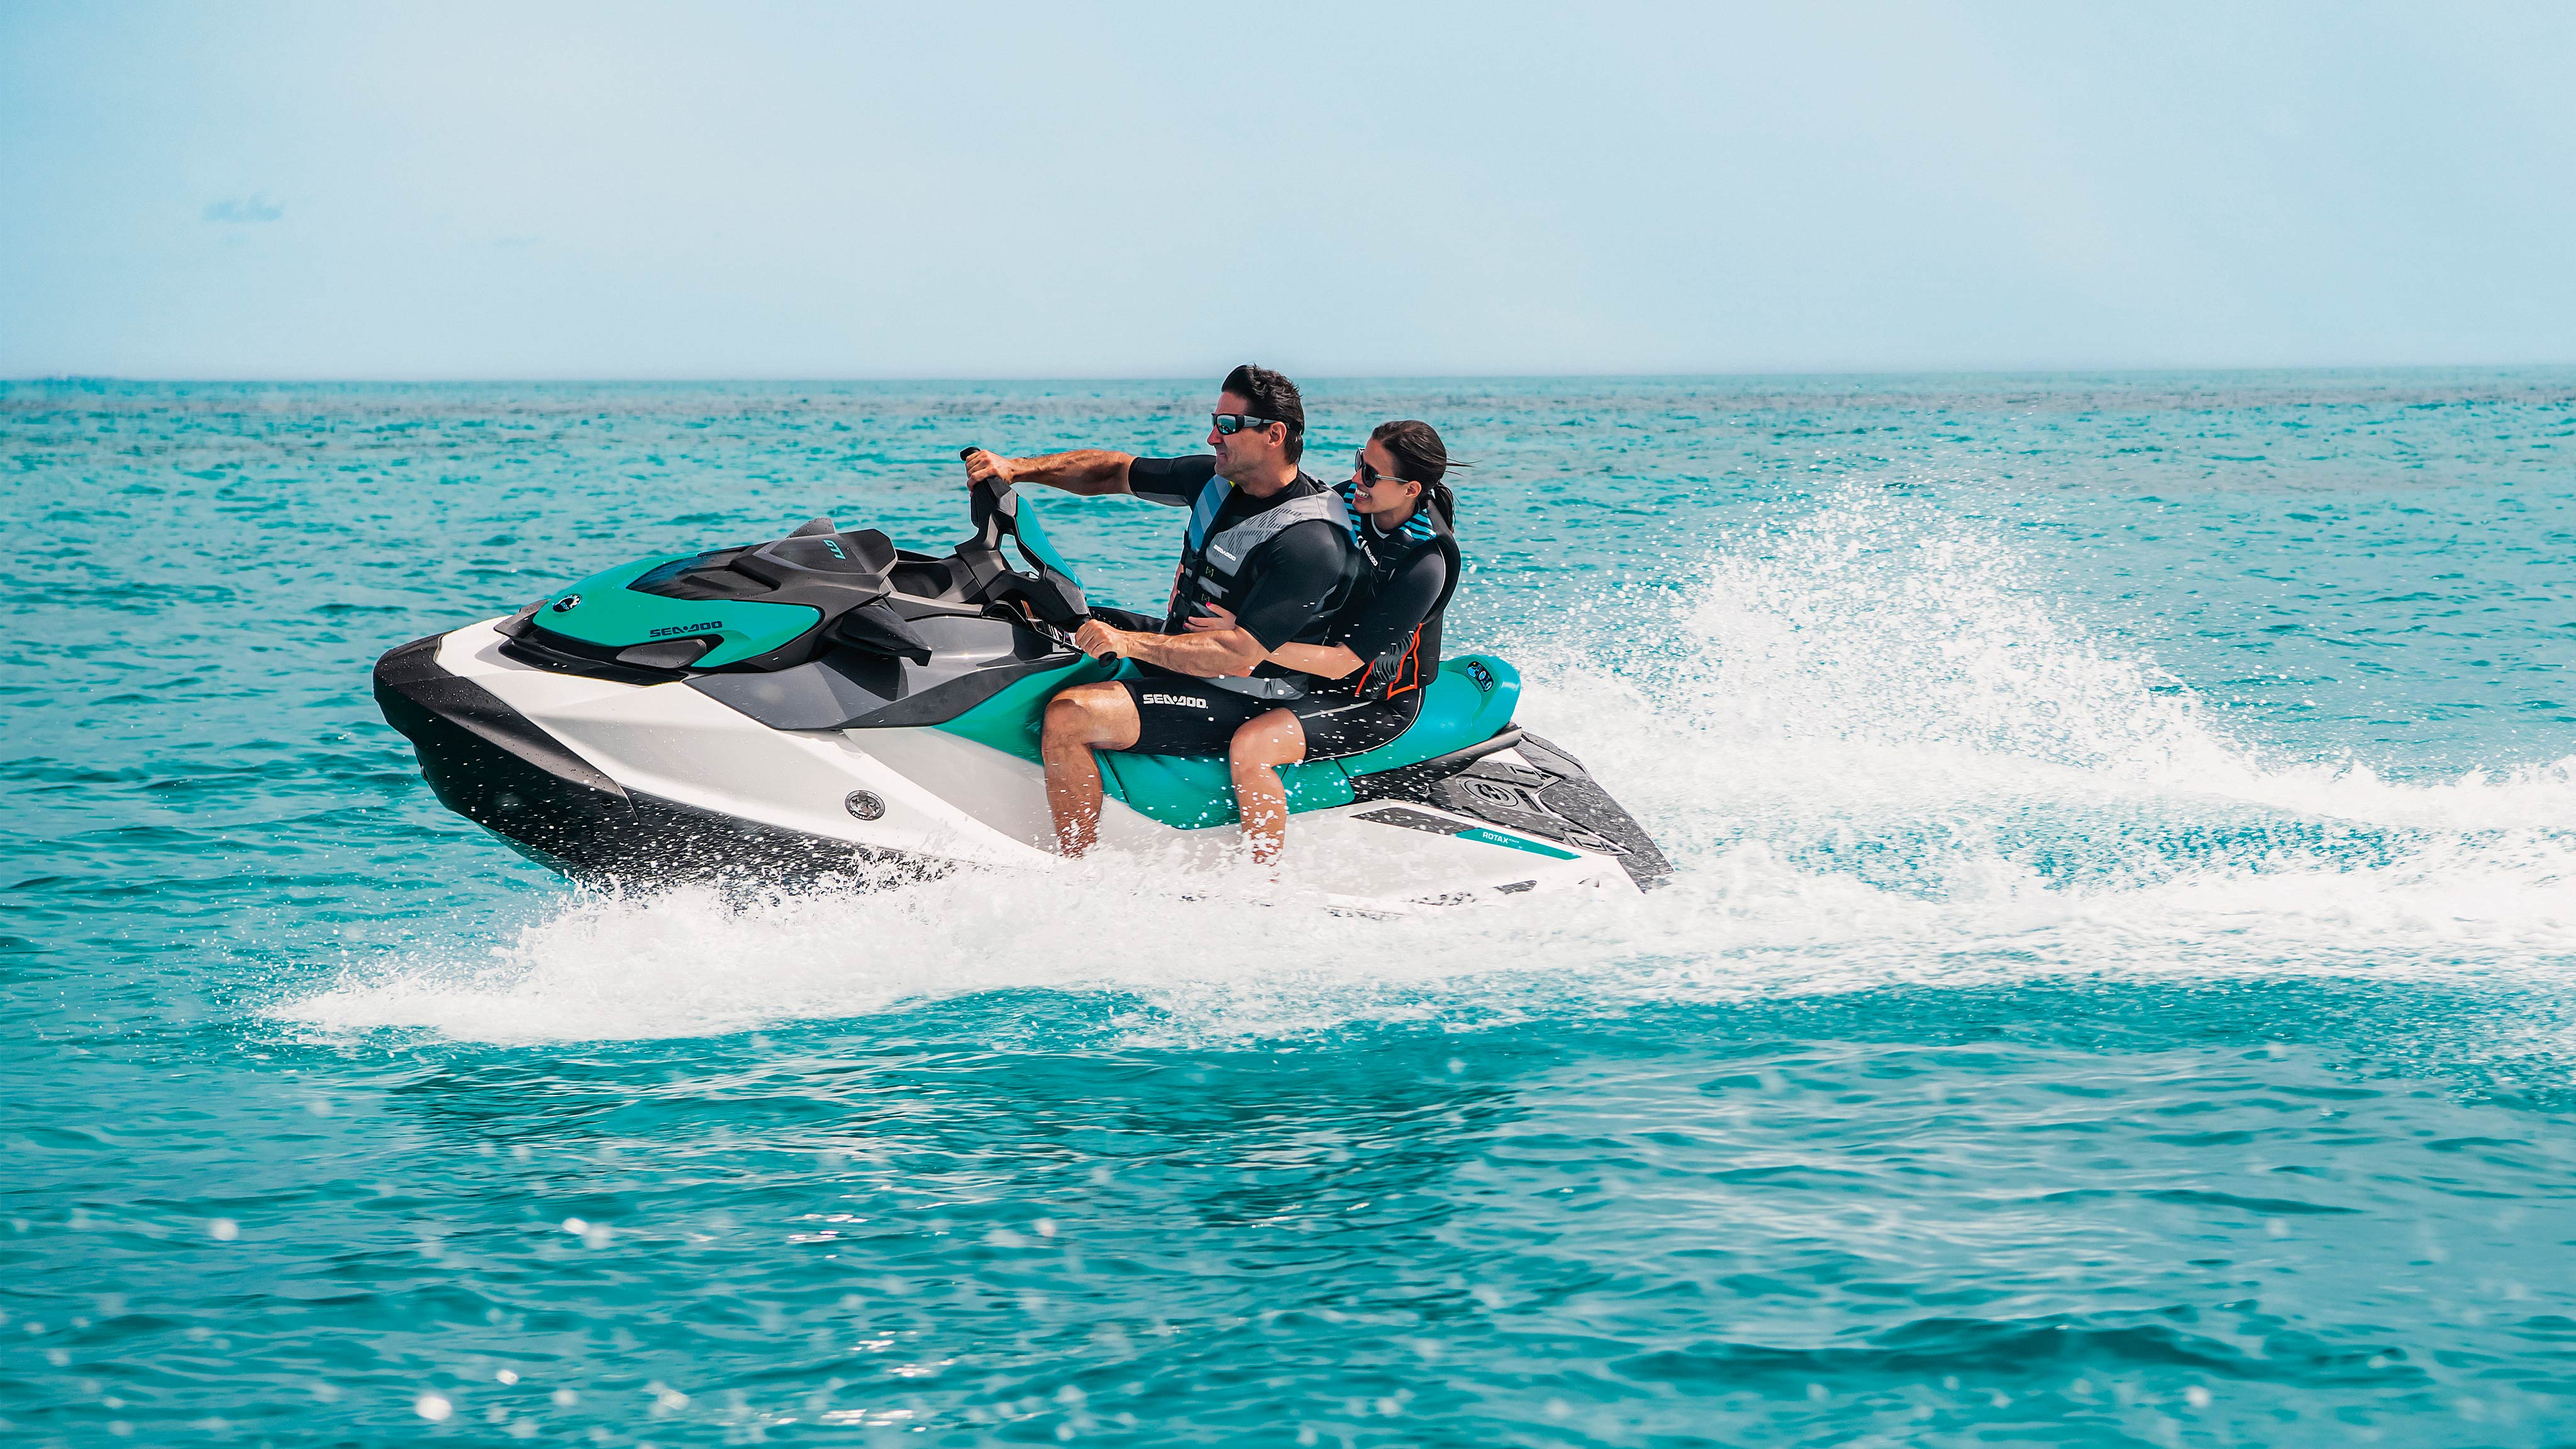 Couple riding on a Sea-Doo GTI